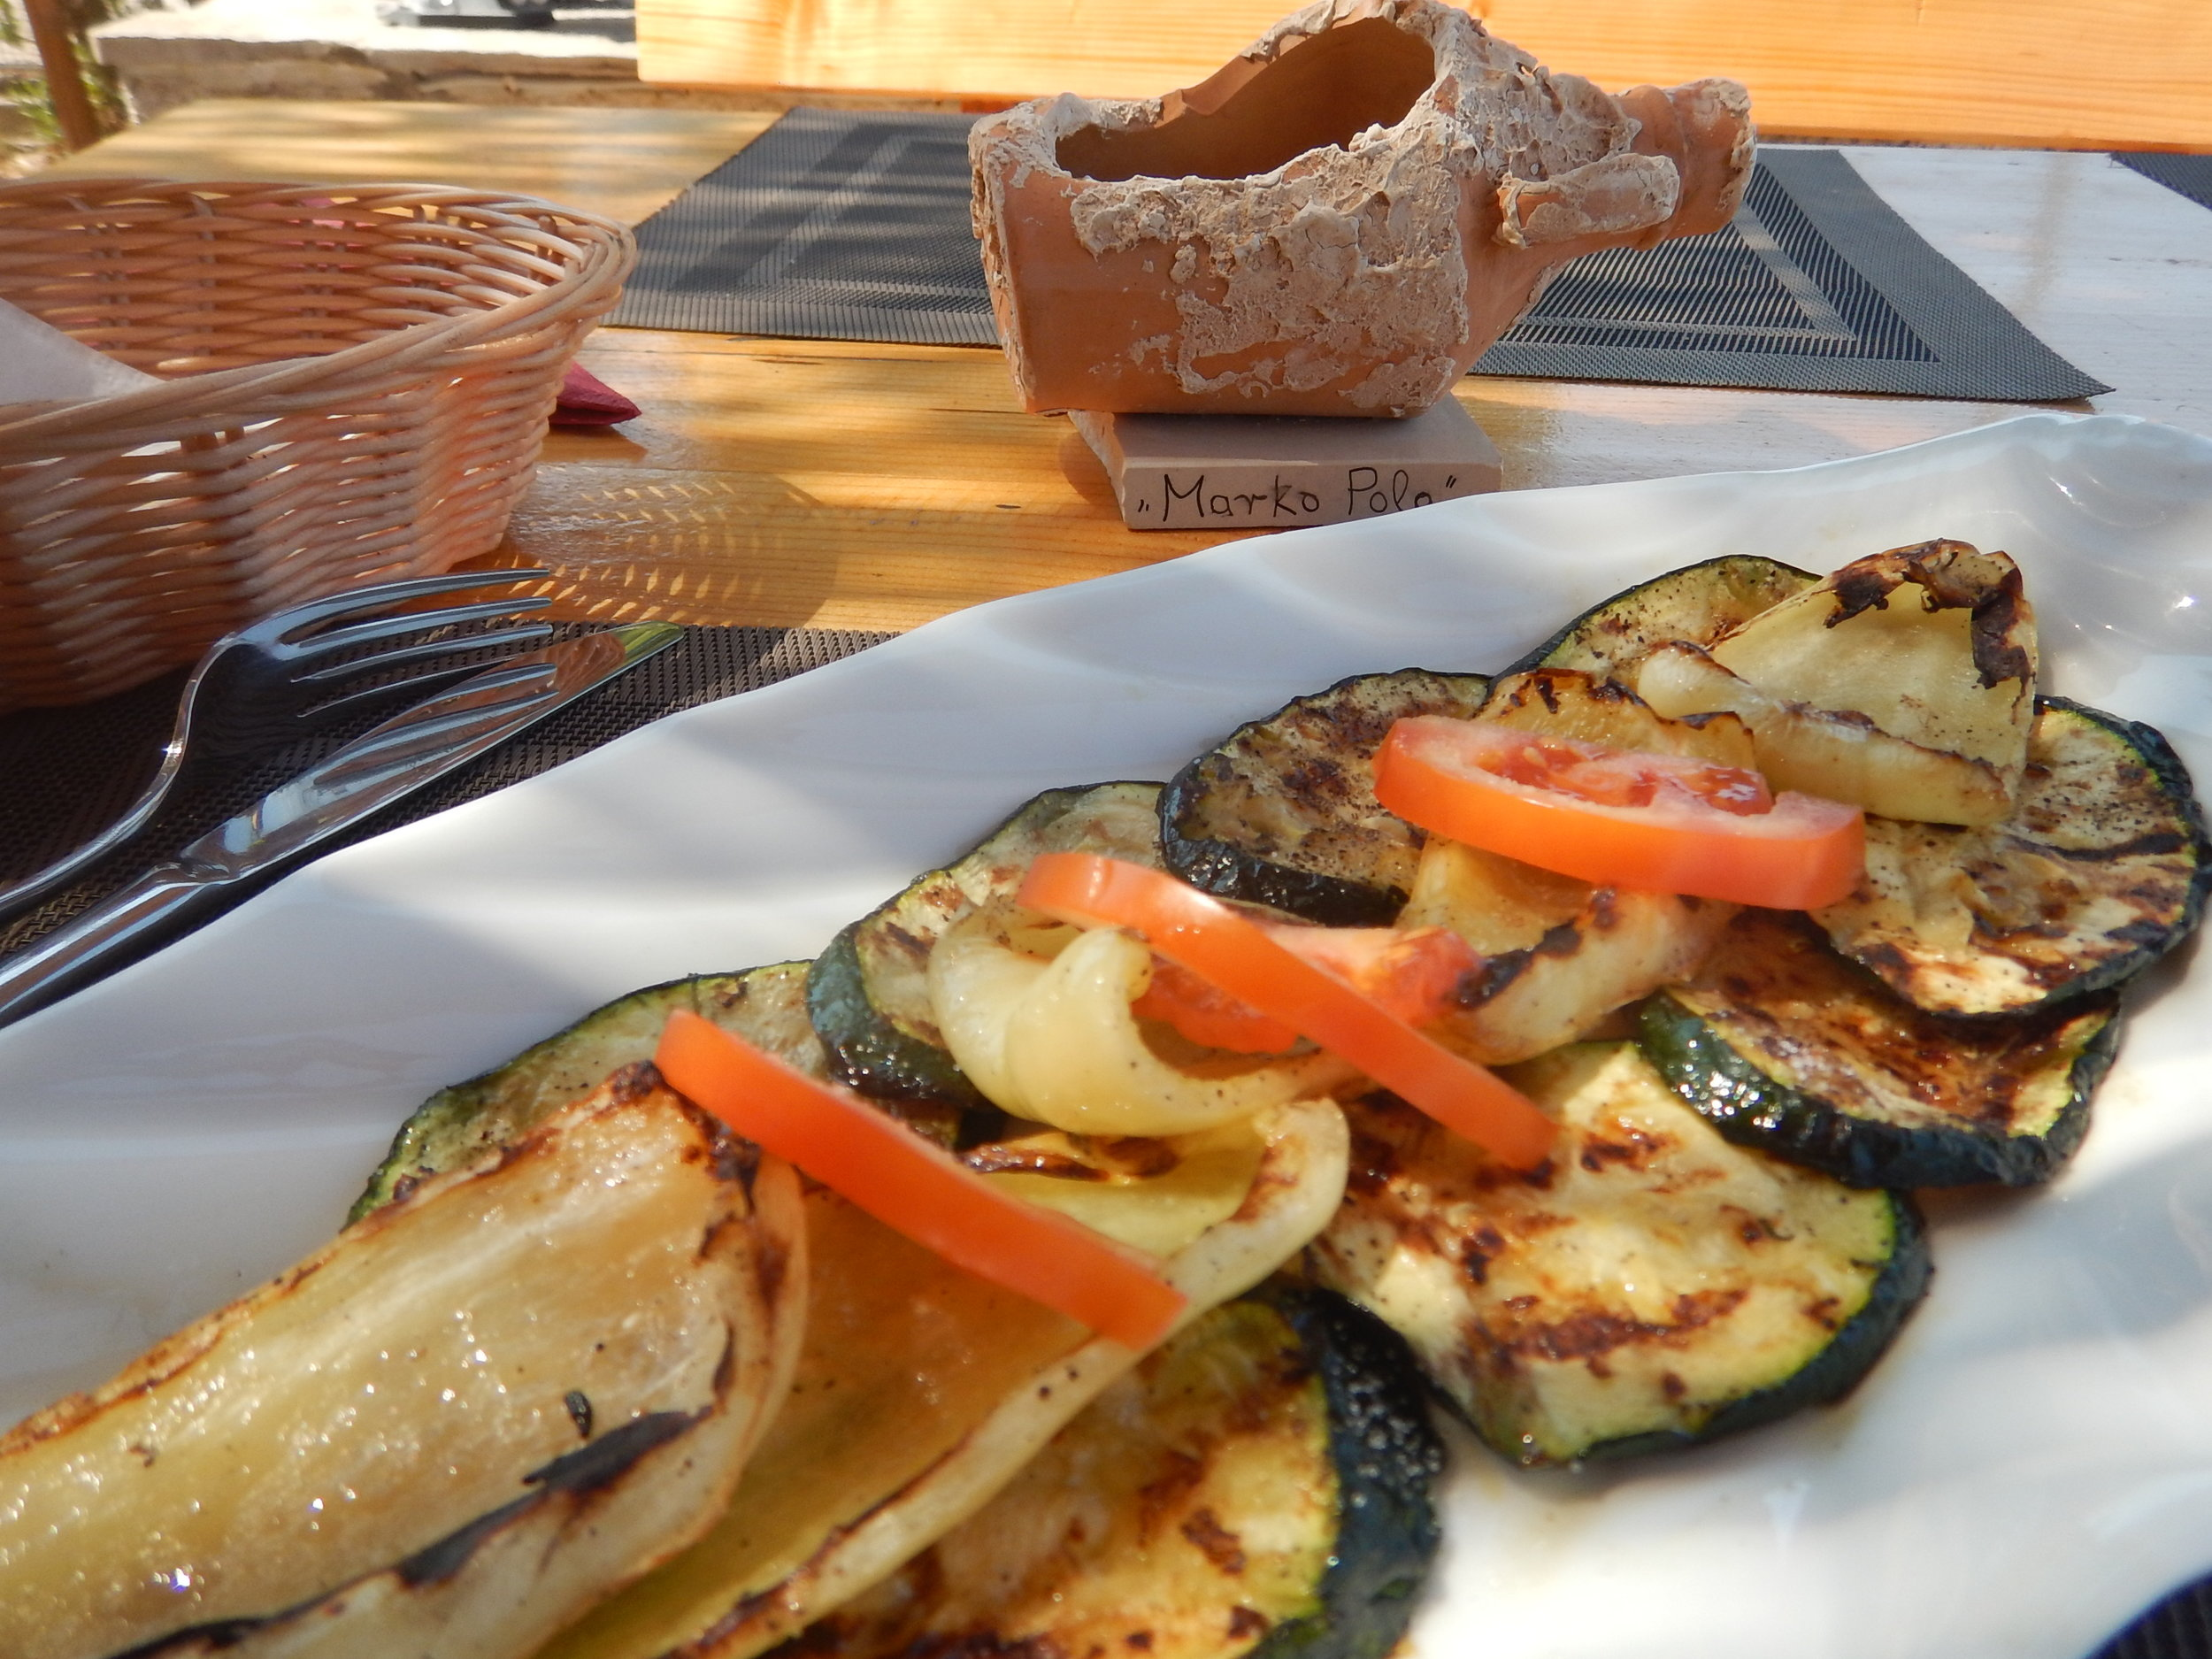 my lunch, my favourite Croatian meal of grilled veggies.